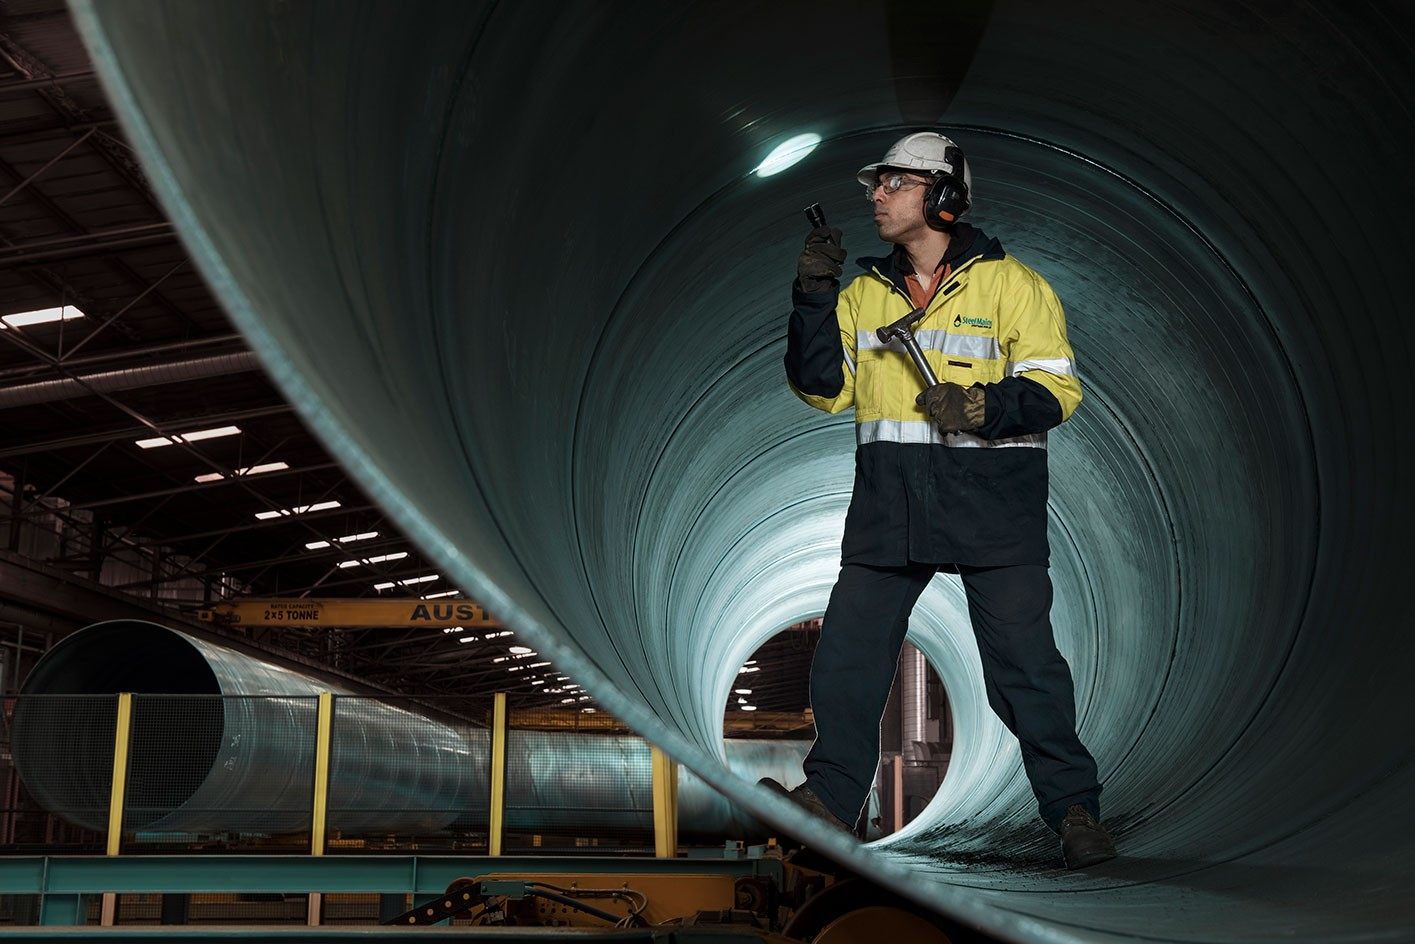 <div>Industrial</div><div> <a href='https://www.nedmeldrum.com.au/project/steel-pipes/'>View Series</a></div>